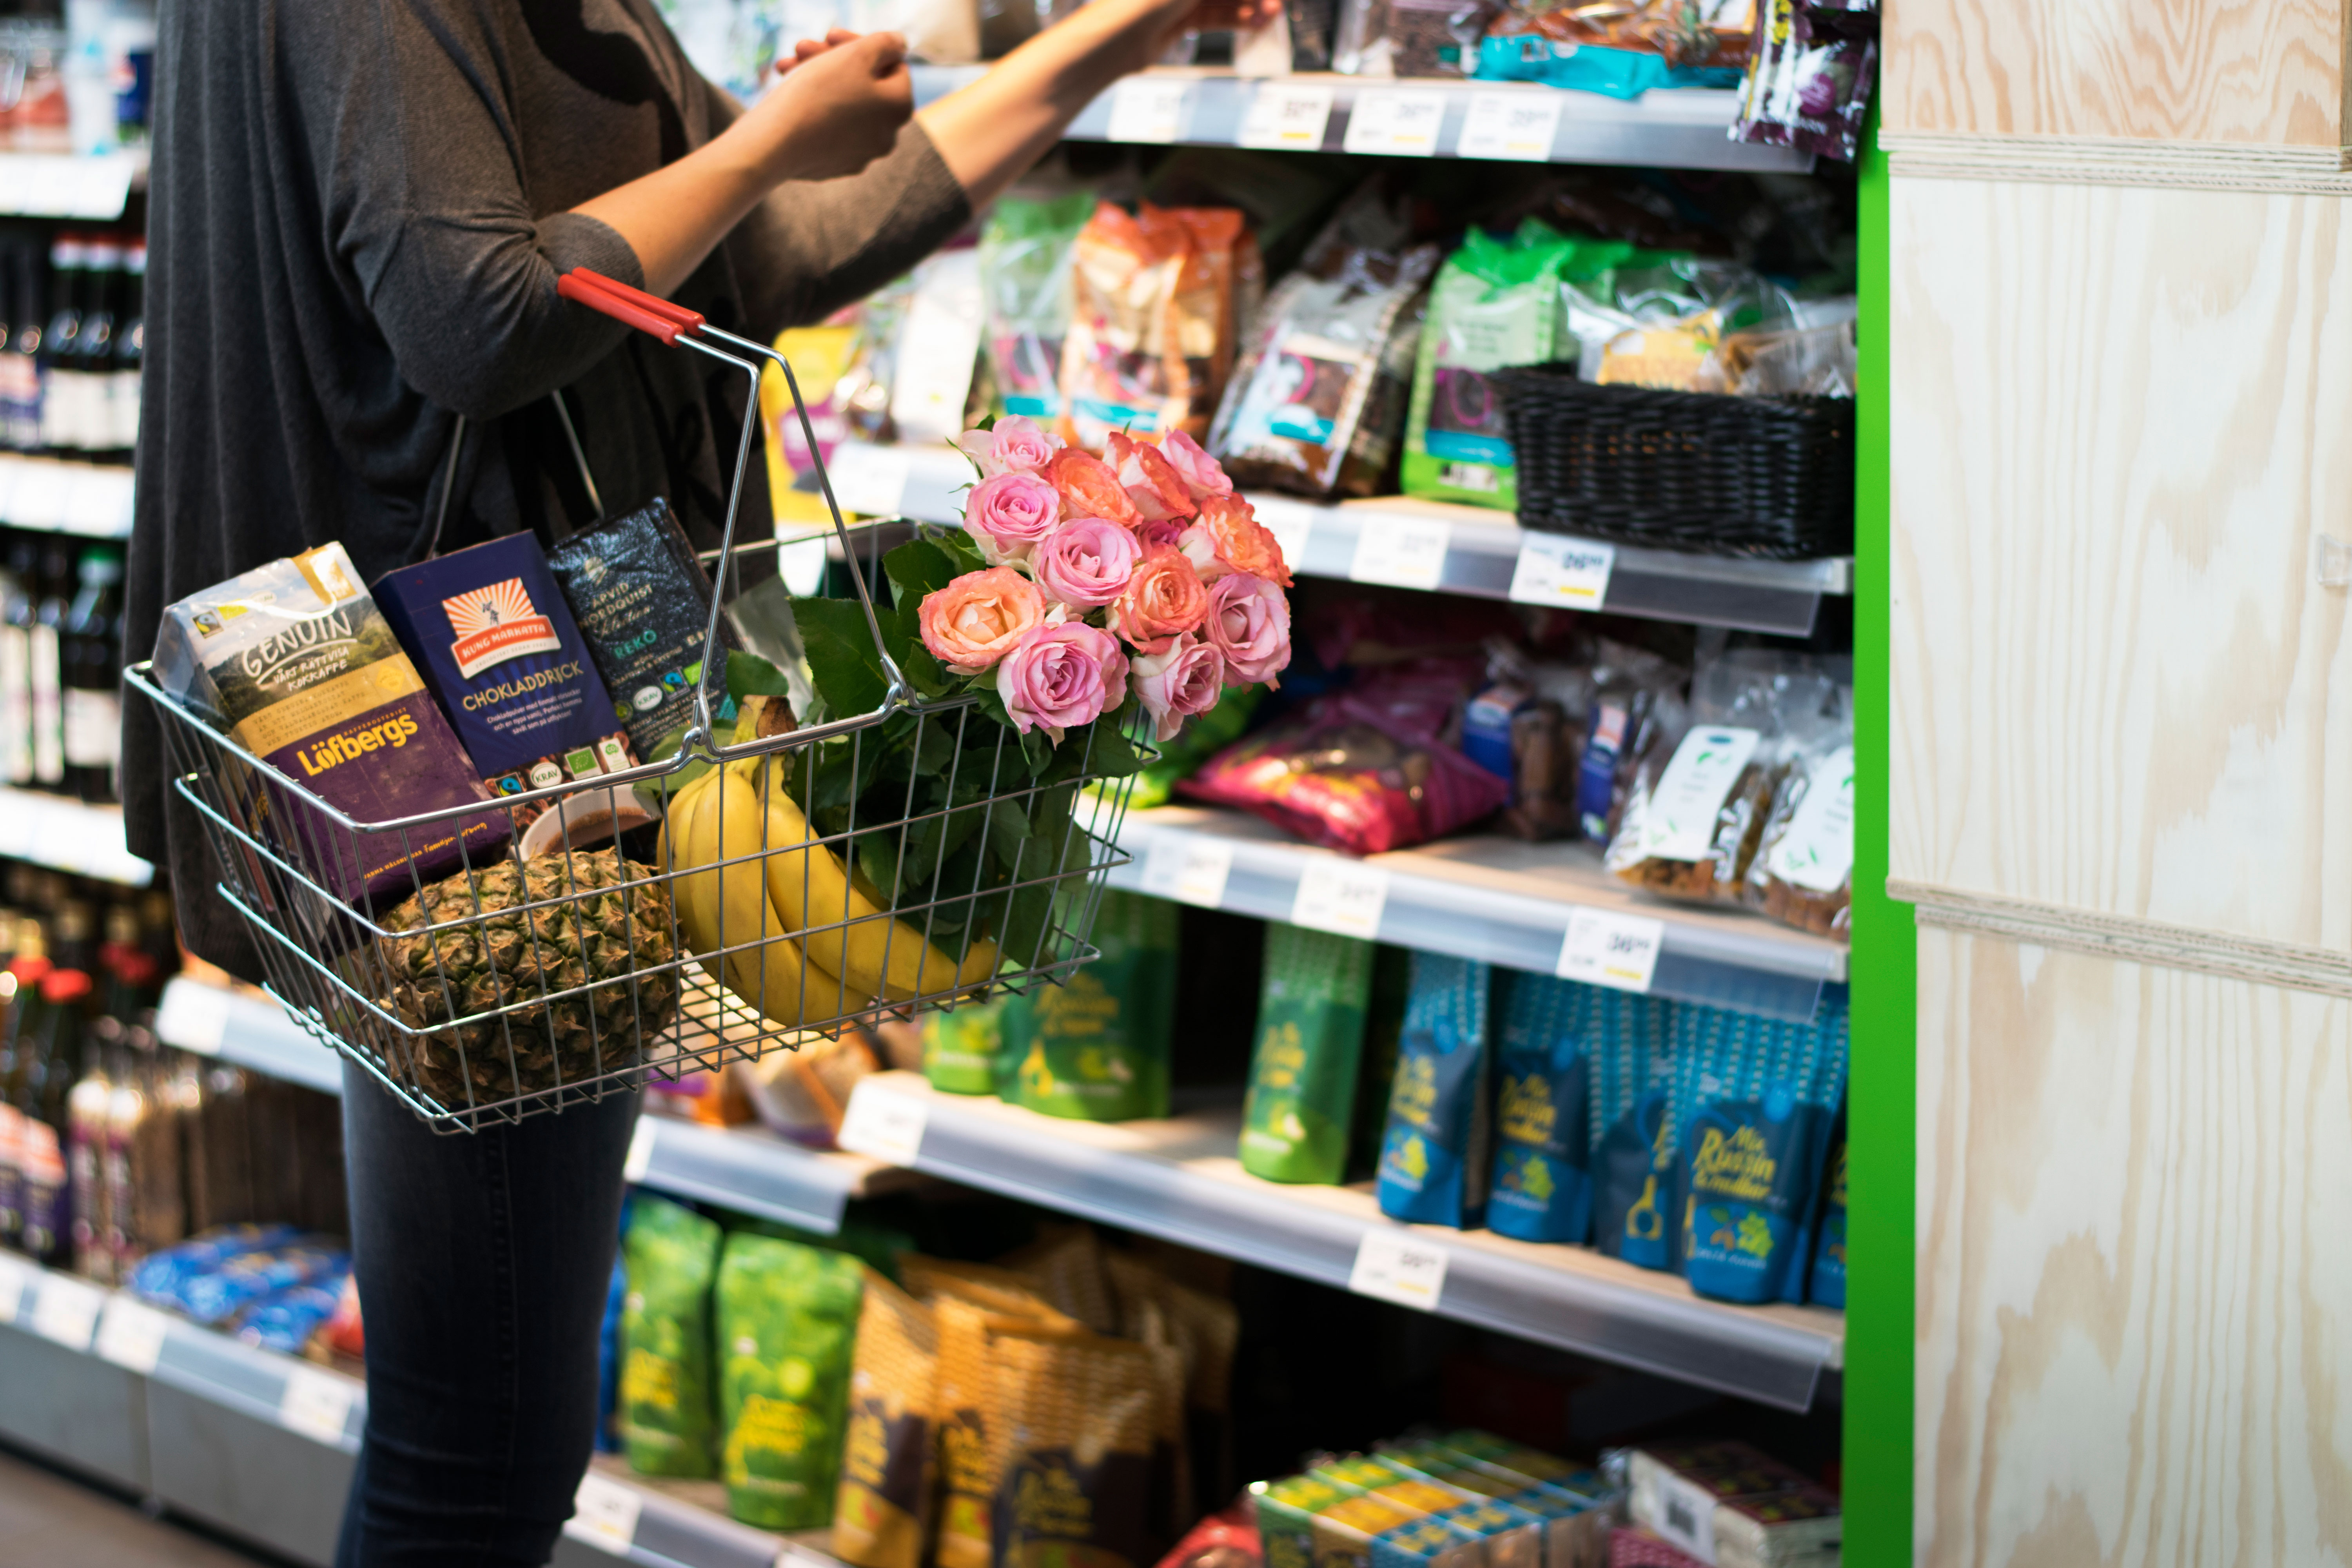 Fairtrade consumer shopping basket